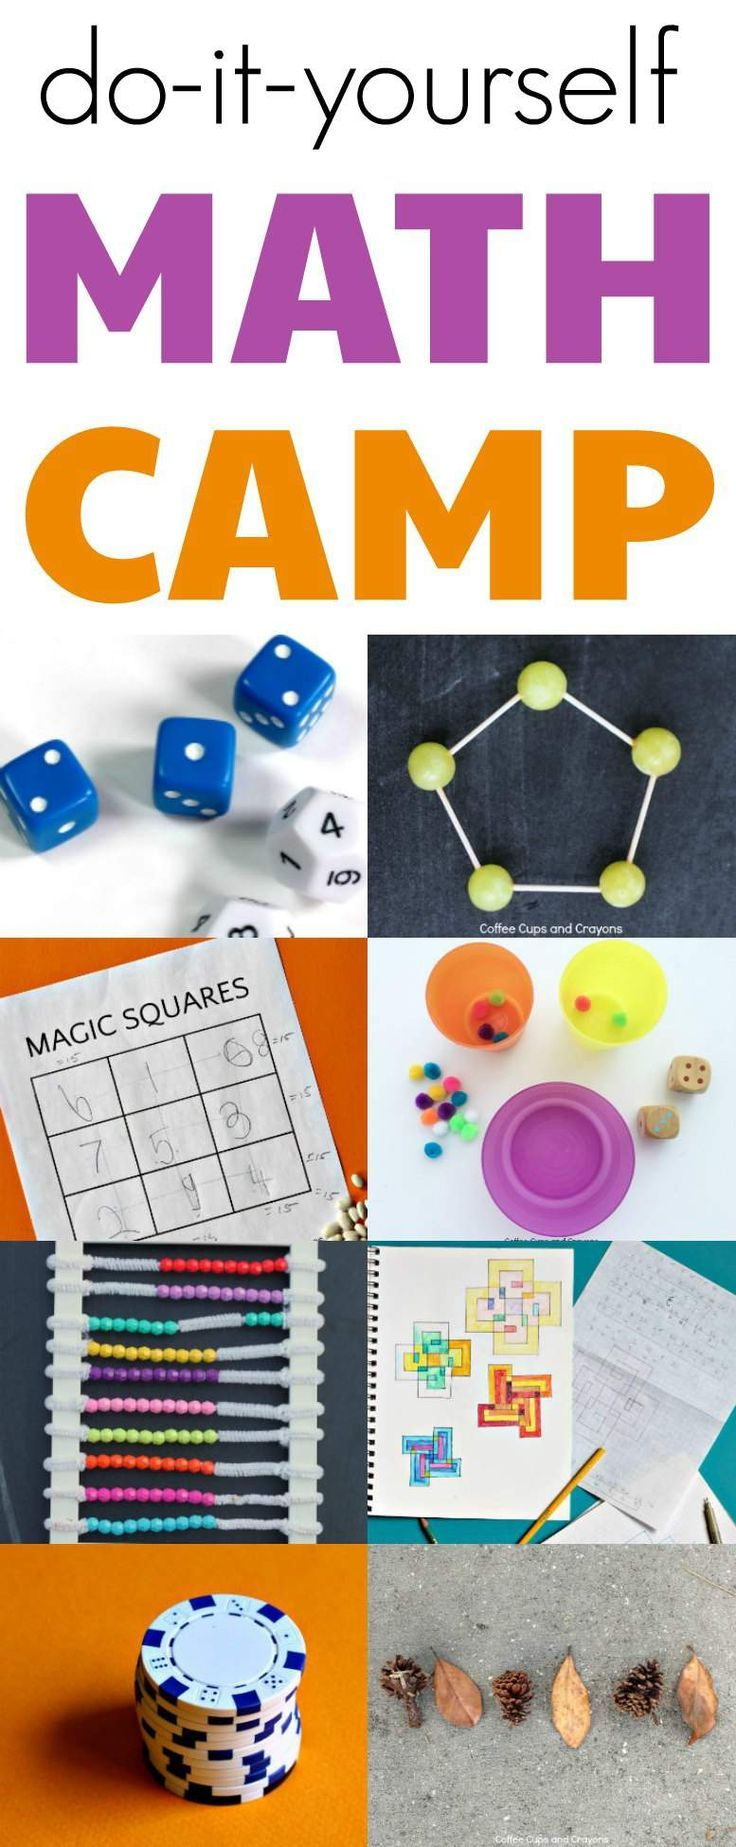 Complete activity lesson plans for a budget friendly fun DIY summer math camp for kids Good for summer learning with friends